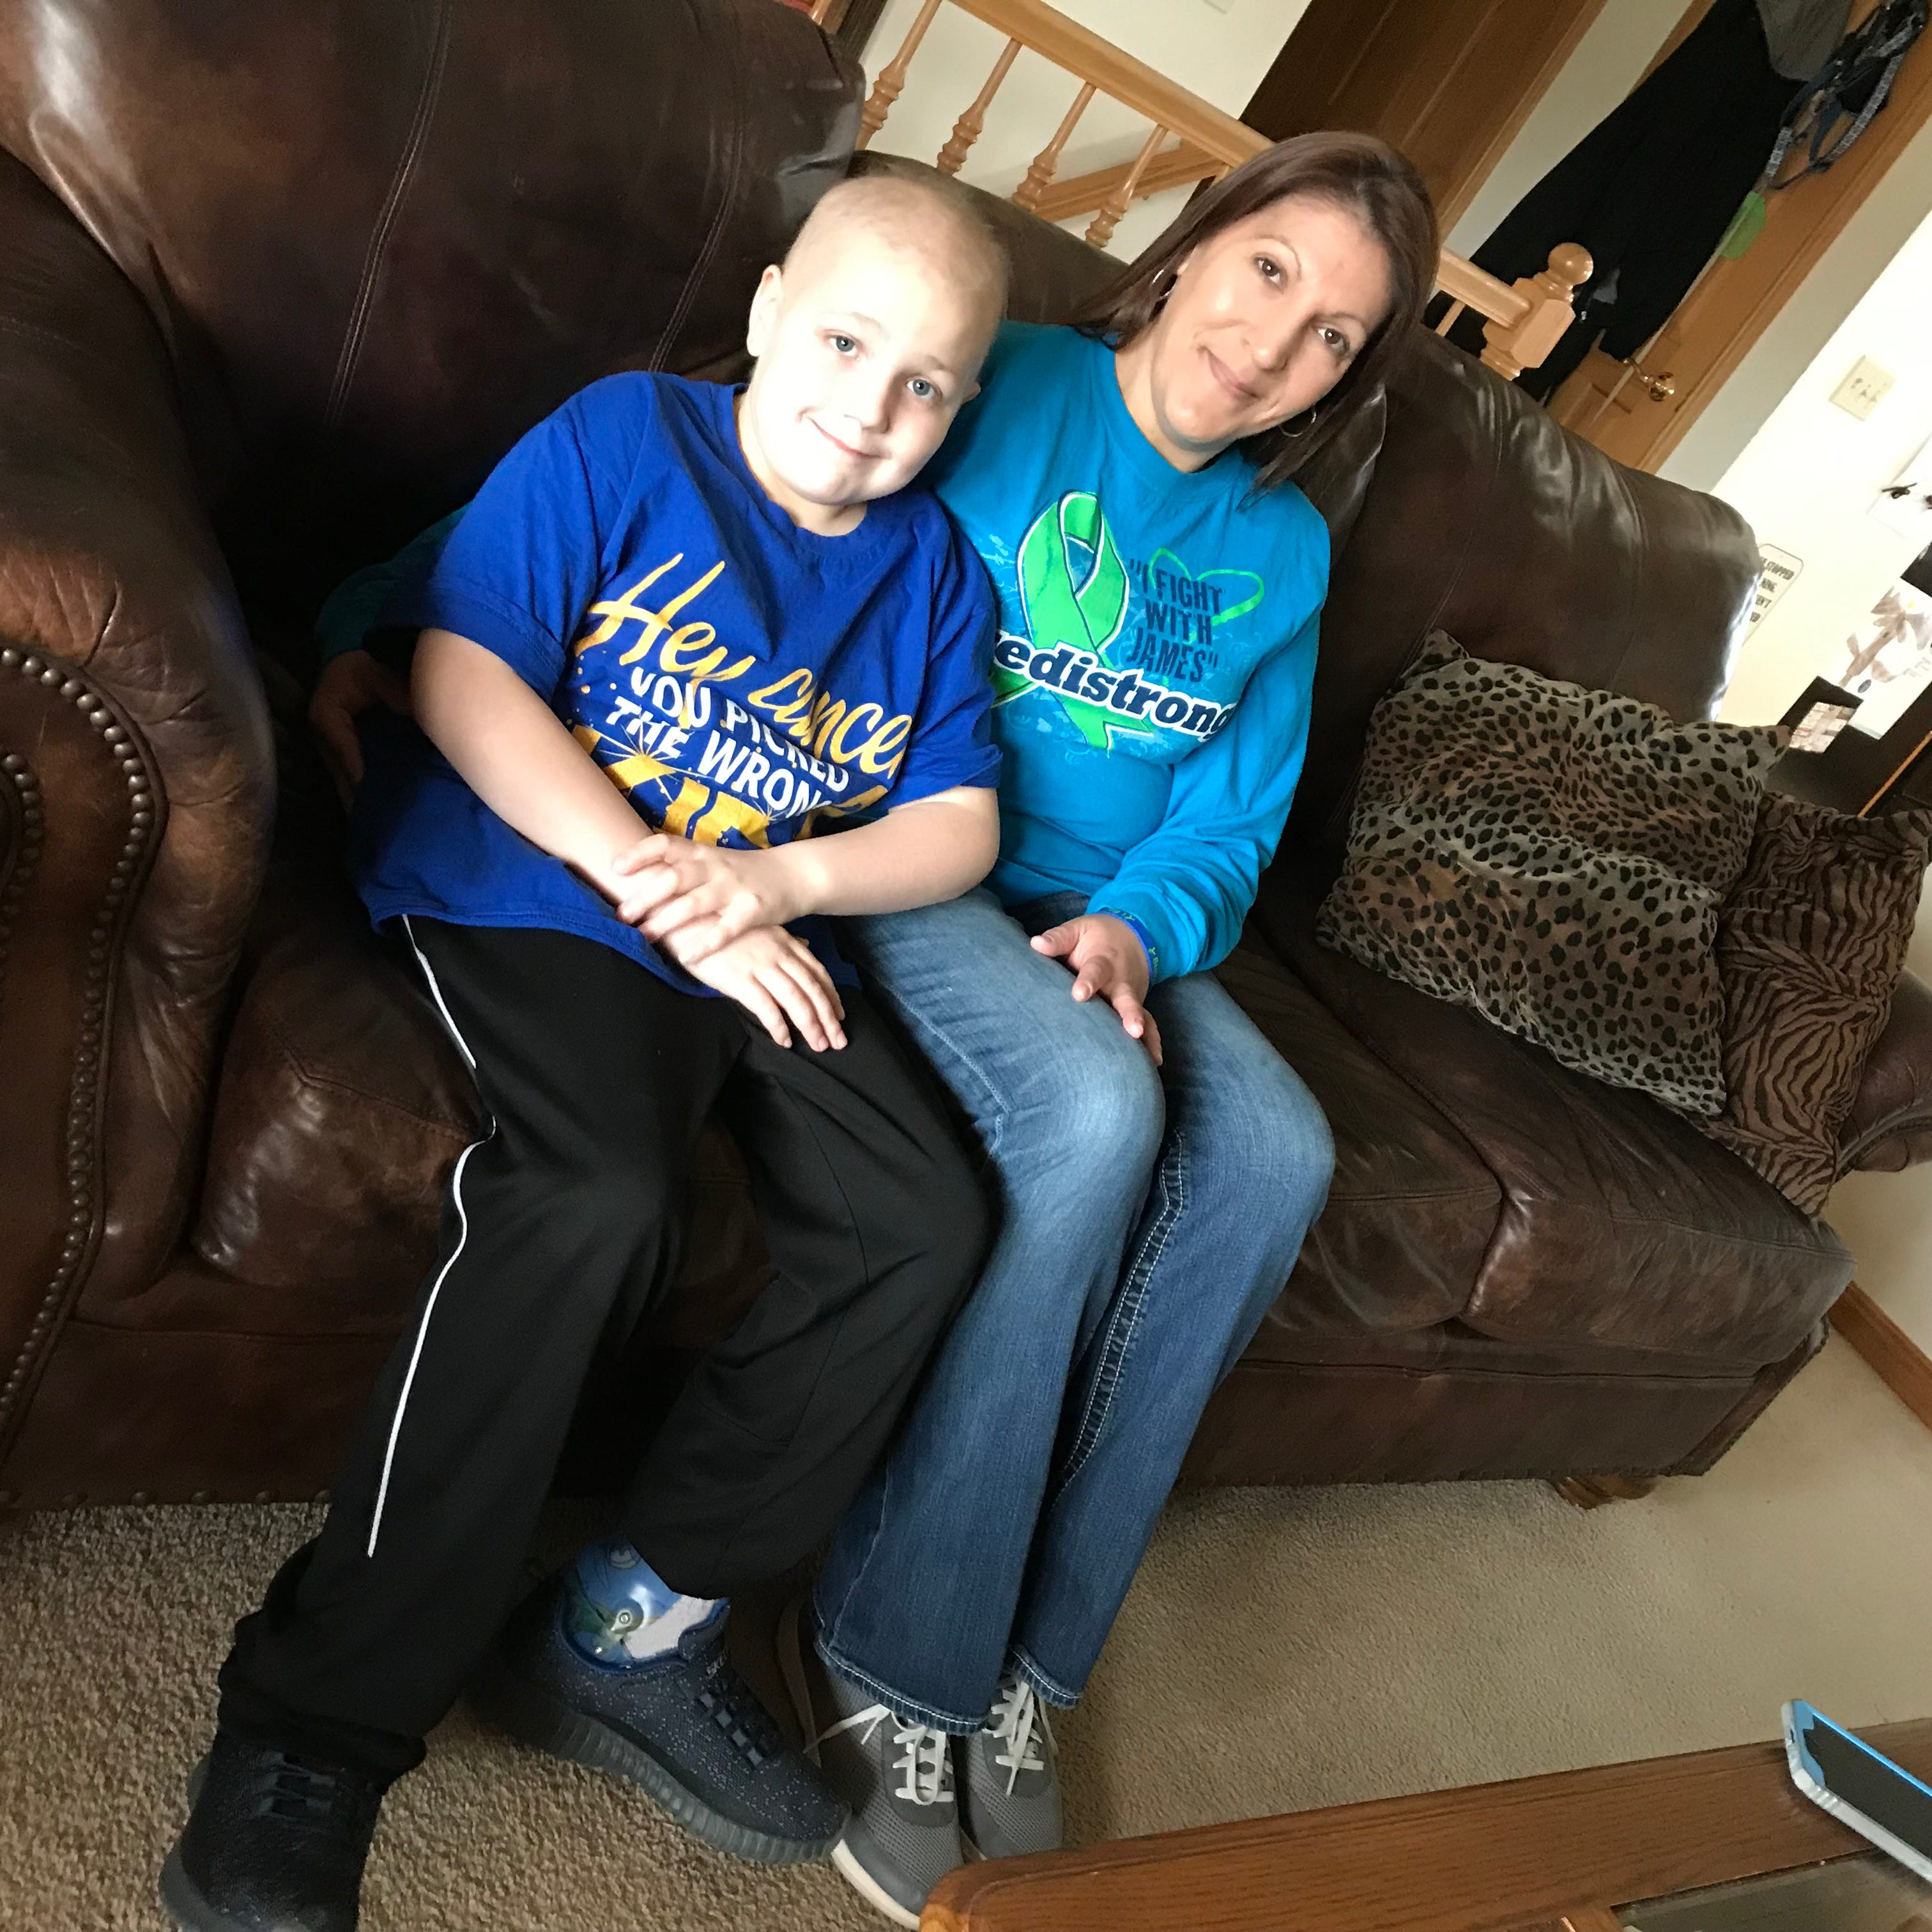 Fundraiser set for May 4 for family of 7-year-old boy fighting cancer